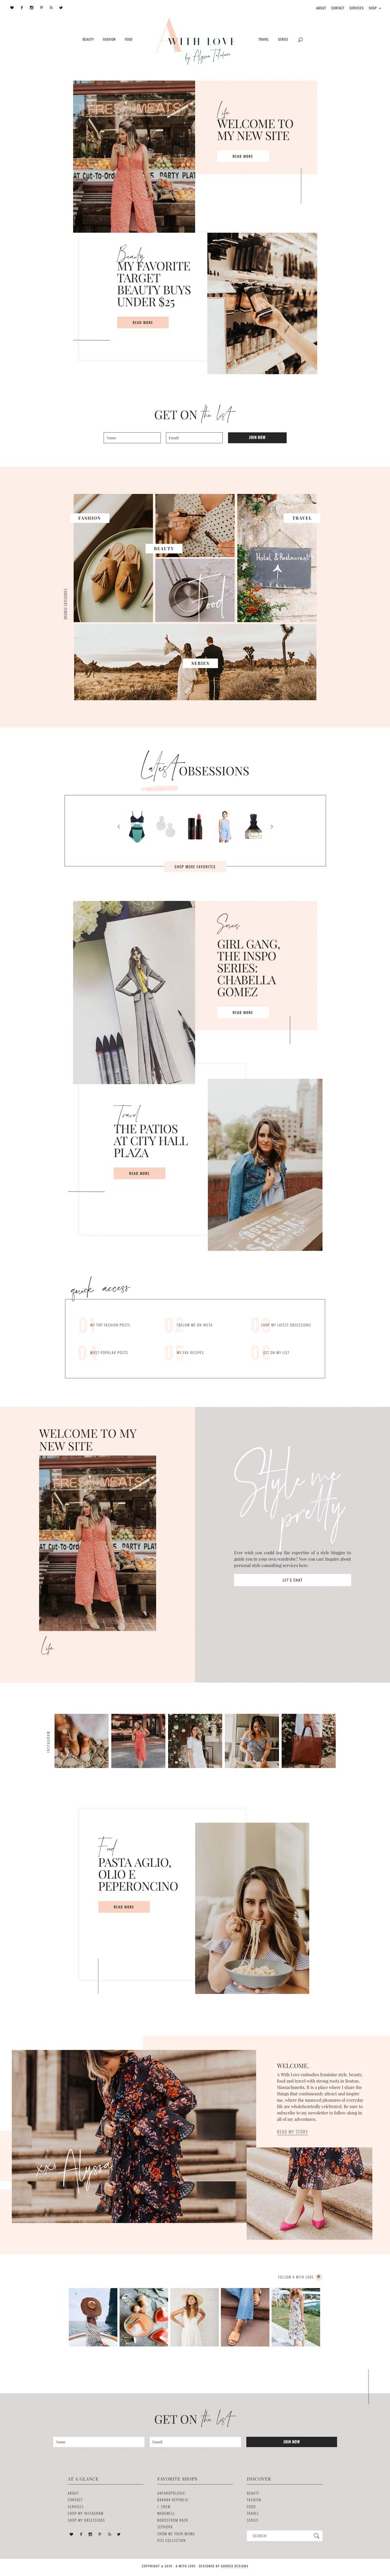 Alyssa Taliaferro - Lifestyle Blogger design on WordPress Adored Designs